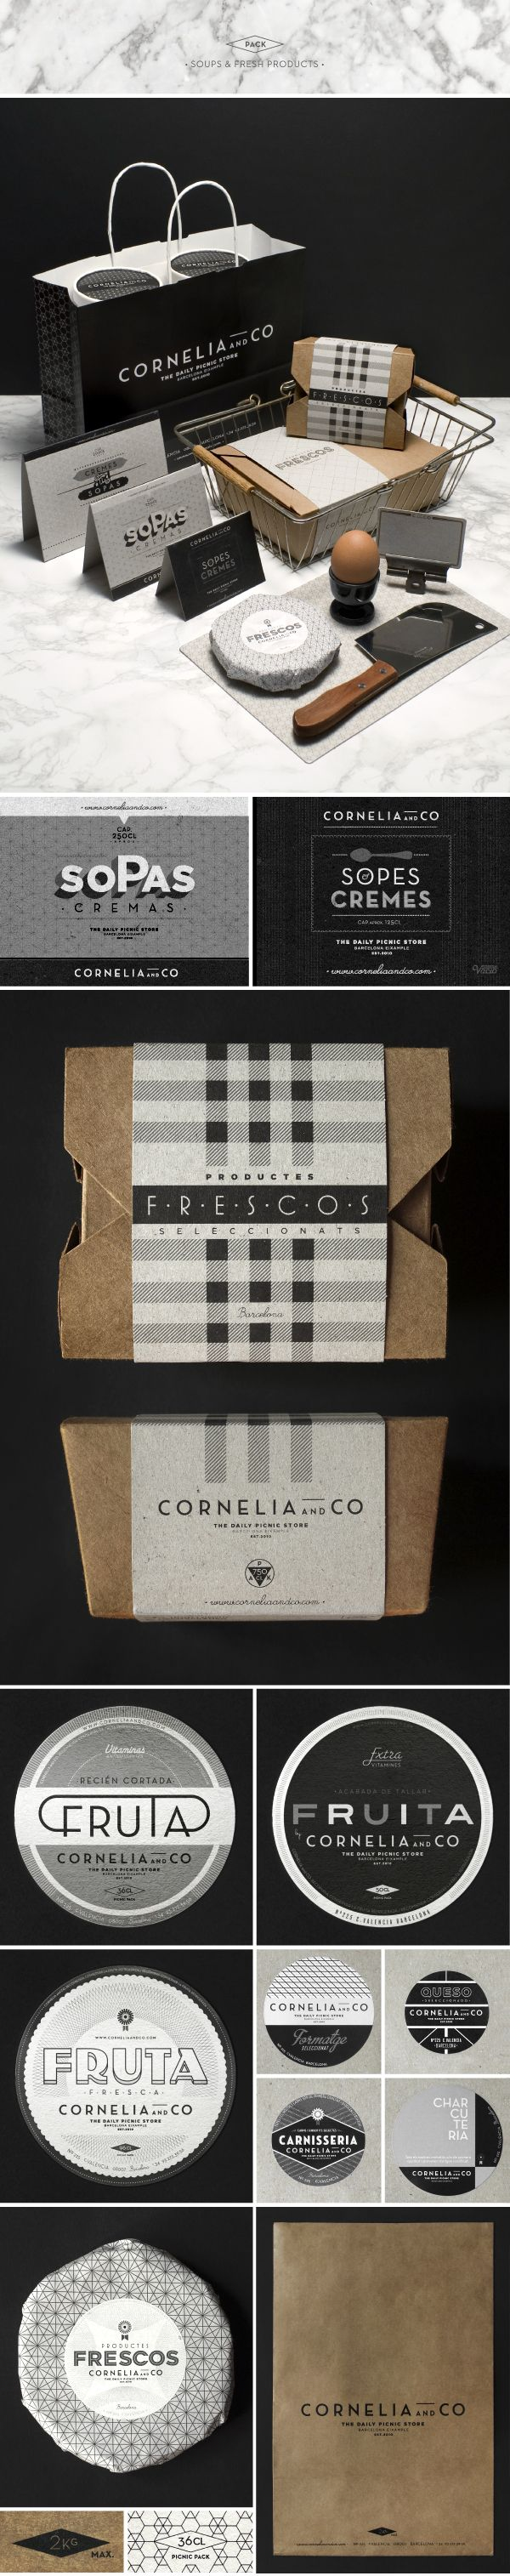 CORNELIA and CO [ Brand identity & Packaging ] Oriol GIl on Behance